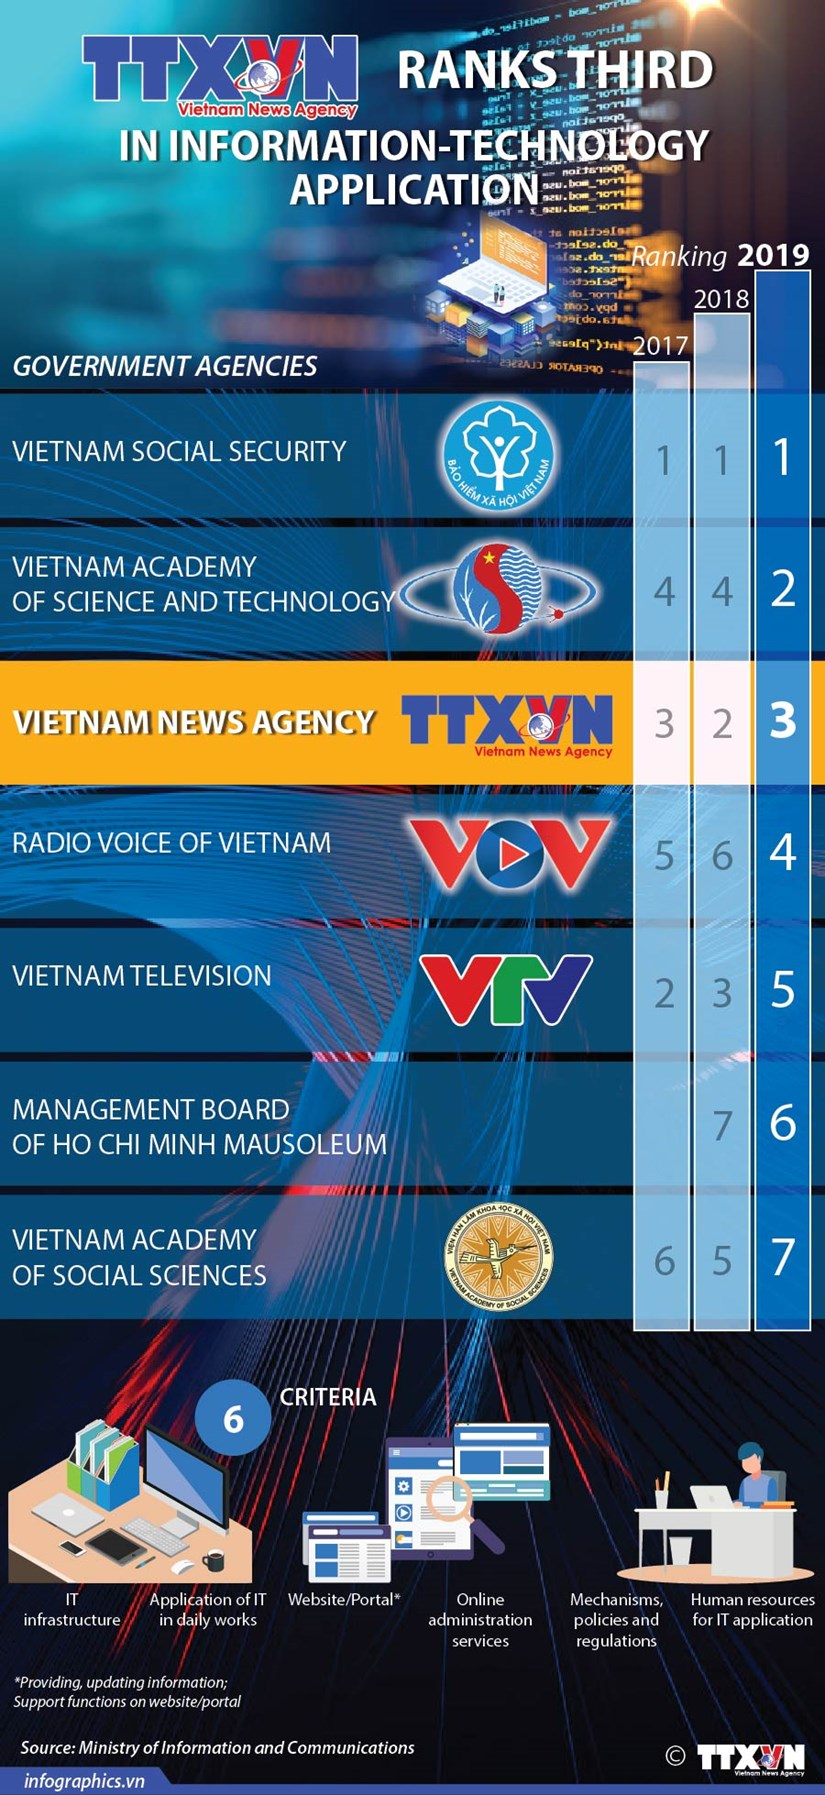 Vietnam News Agency ranks third in IT application hinh anh 1